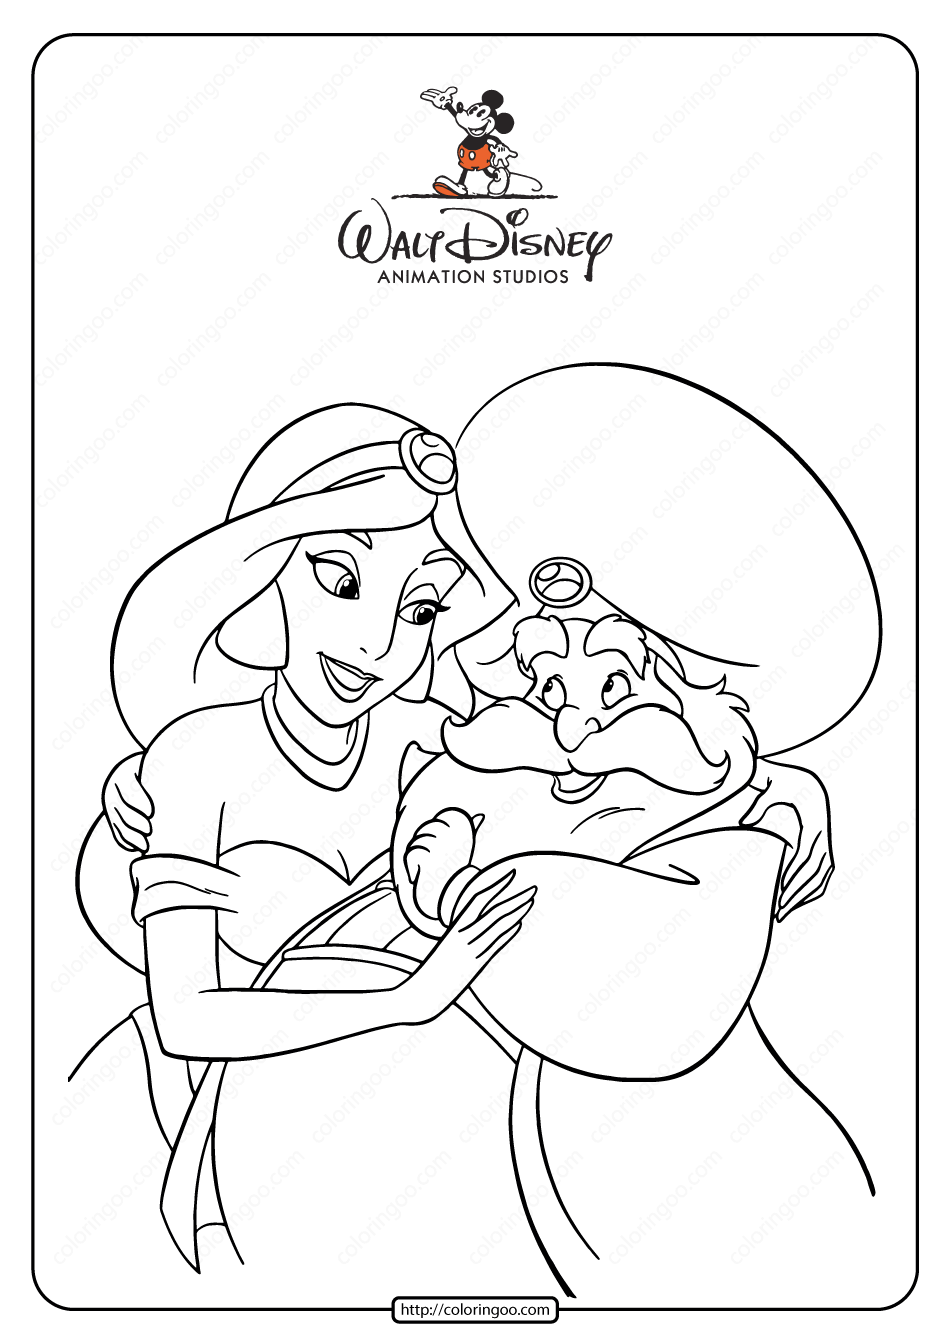 Fantastic Disney Princess Coloring Sheets Photo Inspirations To Print  Rapunzel Tangled Pages – Dialogueeurope | 1344x950